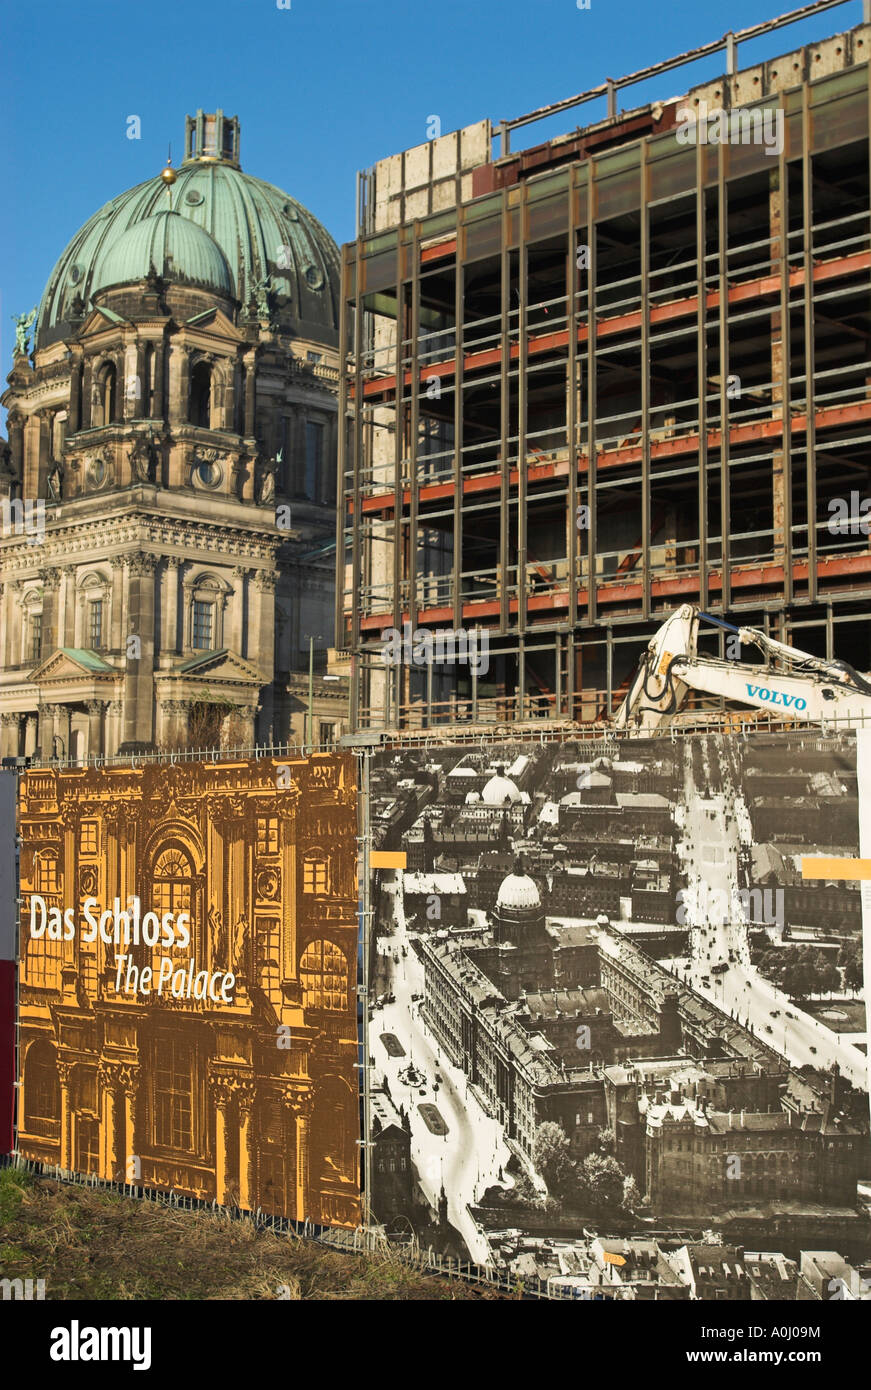 Historic photo of the demolished city castle (Stadtschloss) in front of the ruins of the former GDR legislative - Stock Image